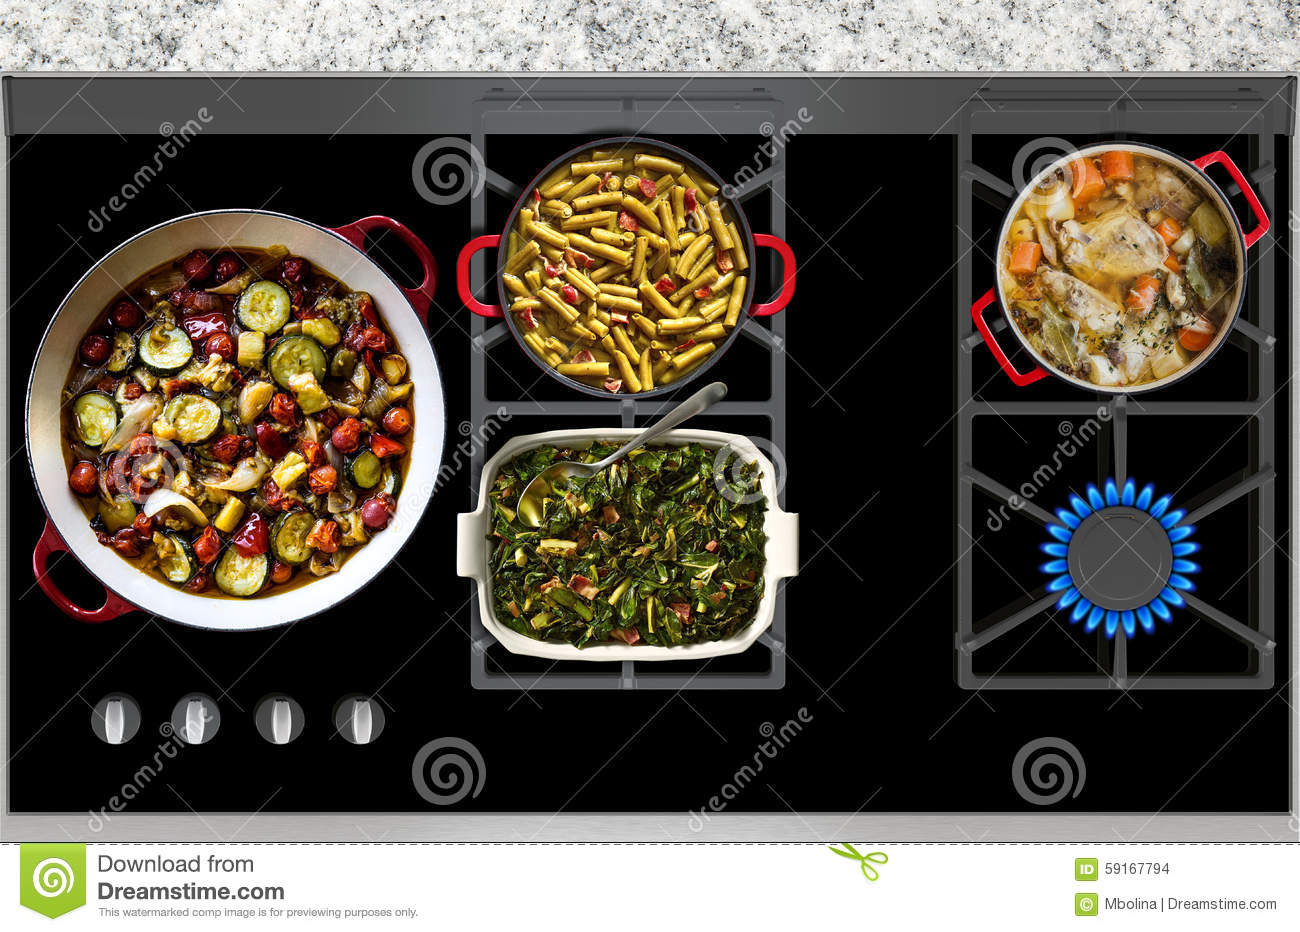 cooking-food-gas-stove-top-panoramic-view-vegetables-meat-59167794.jpg